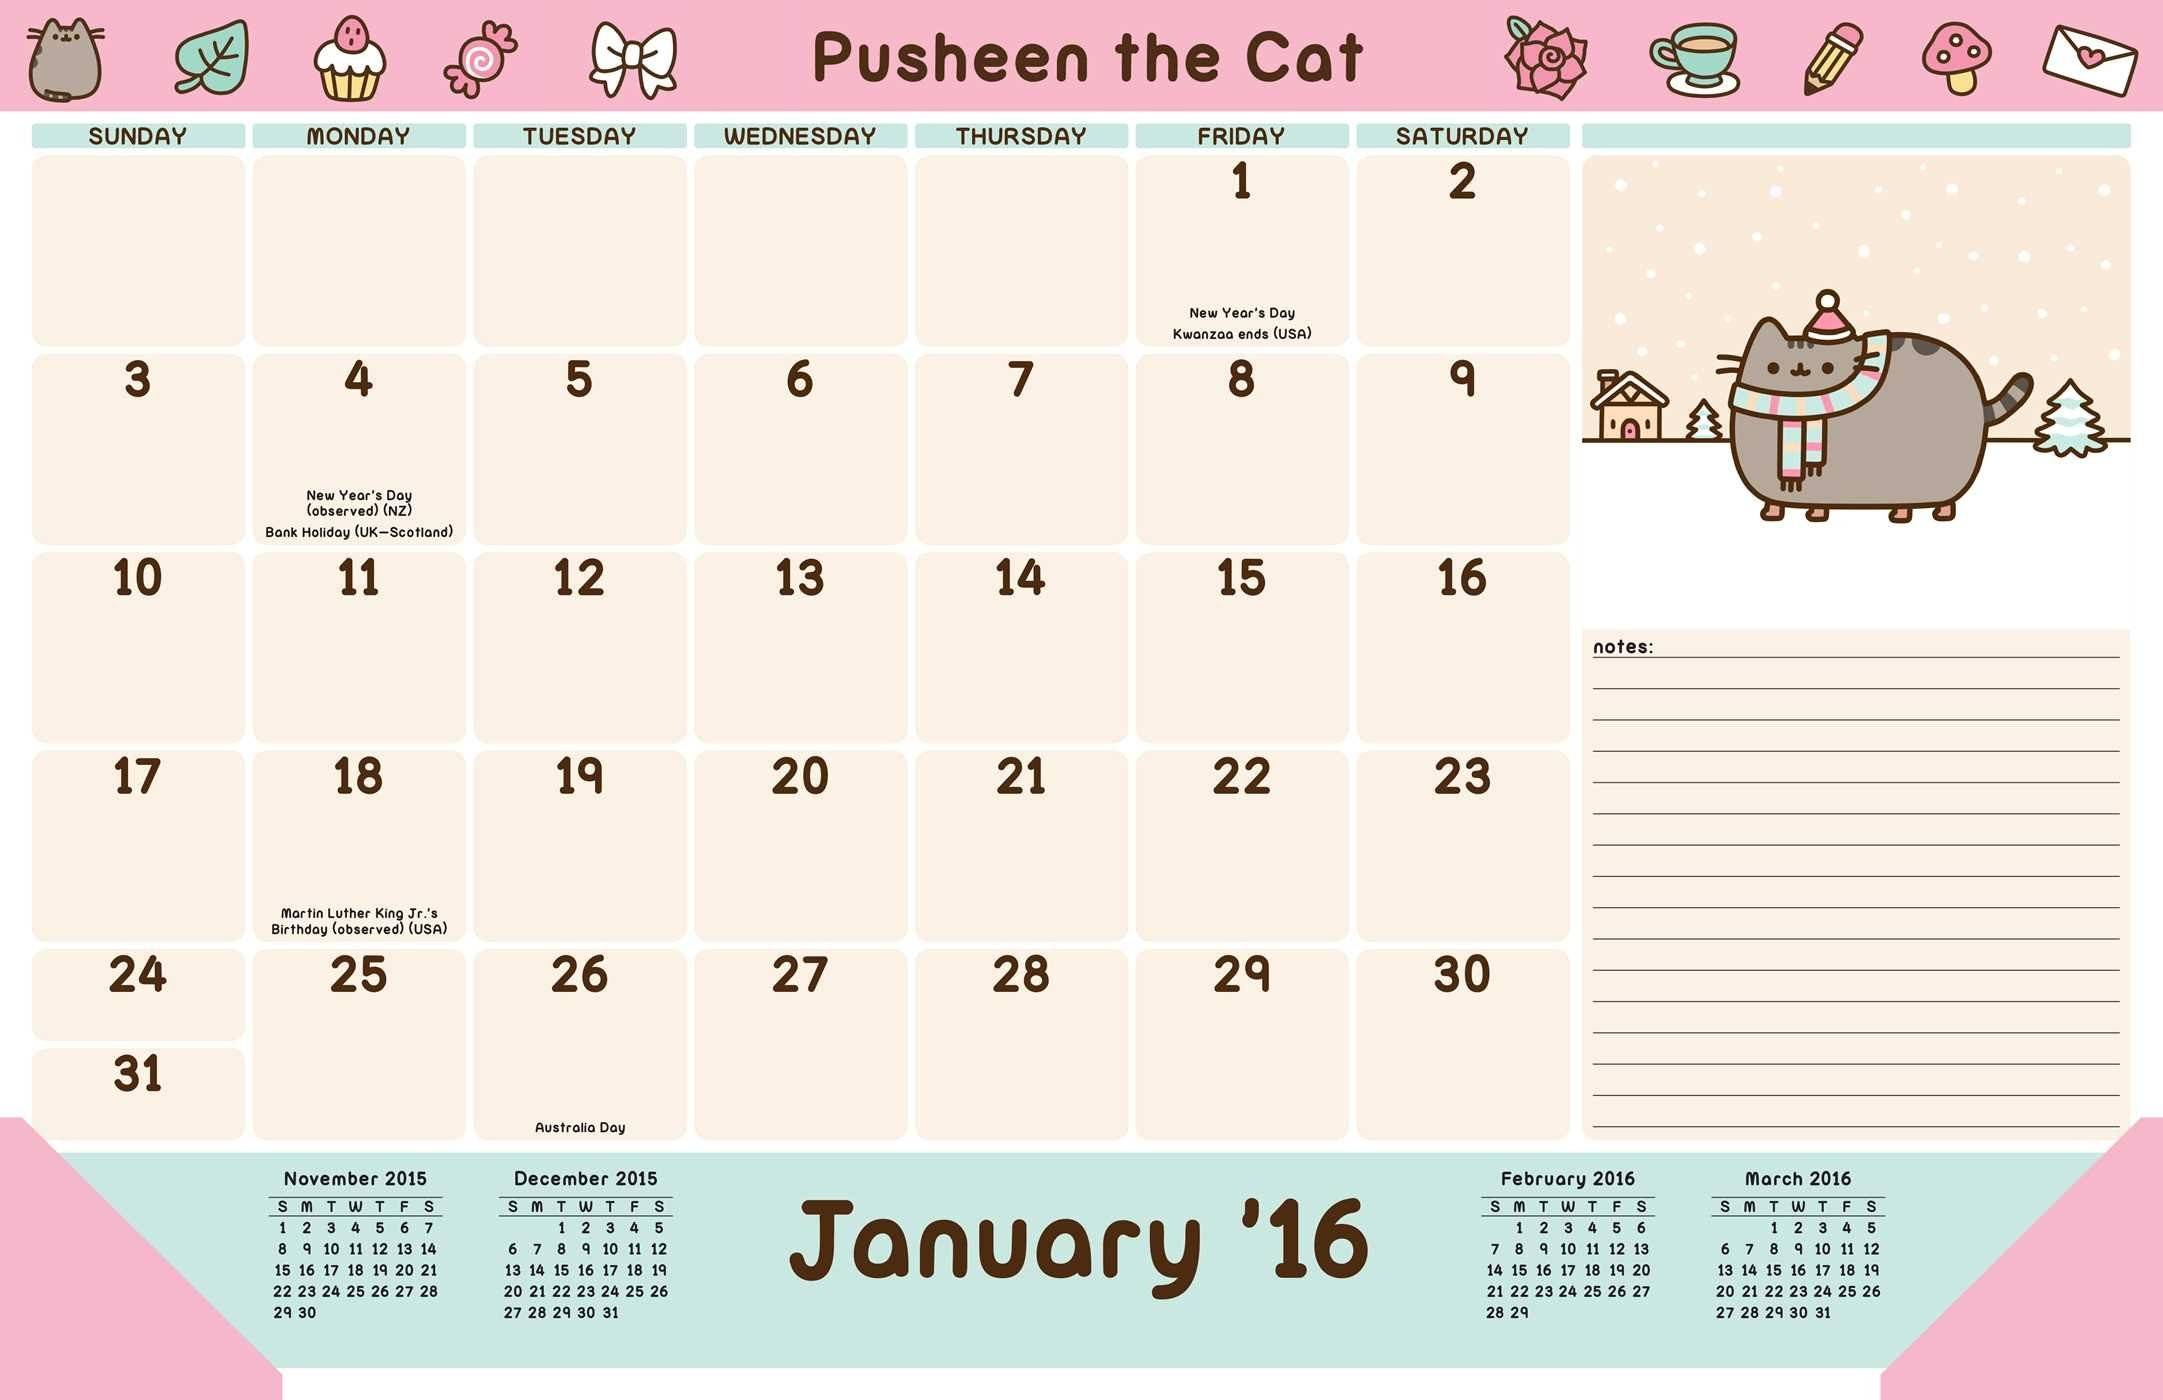 Pusheen Official 2017 Calendar – Square 305x305mm Wall Calendar .